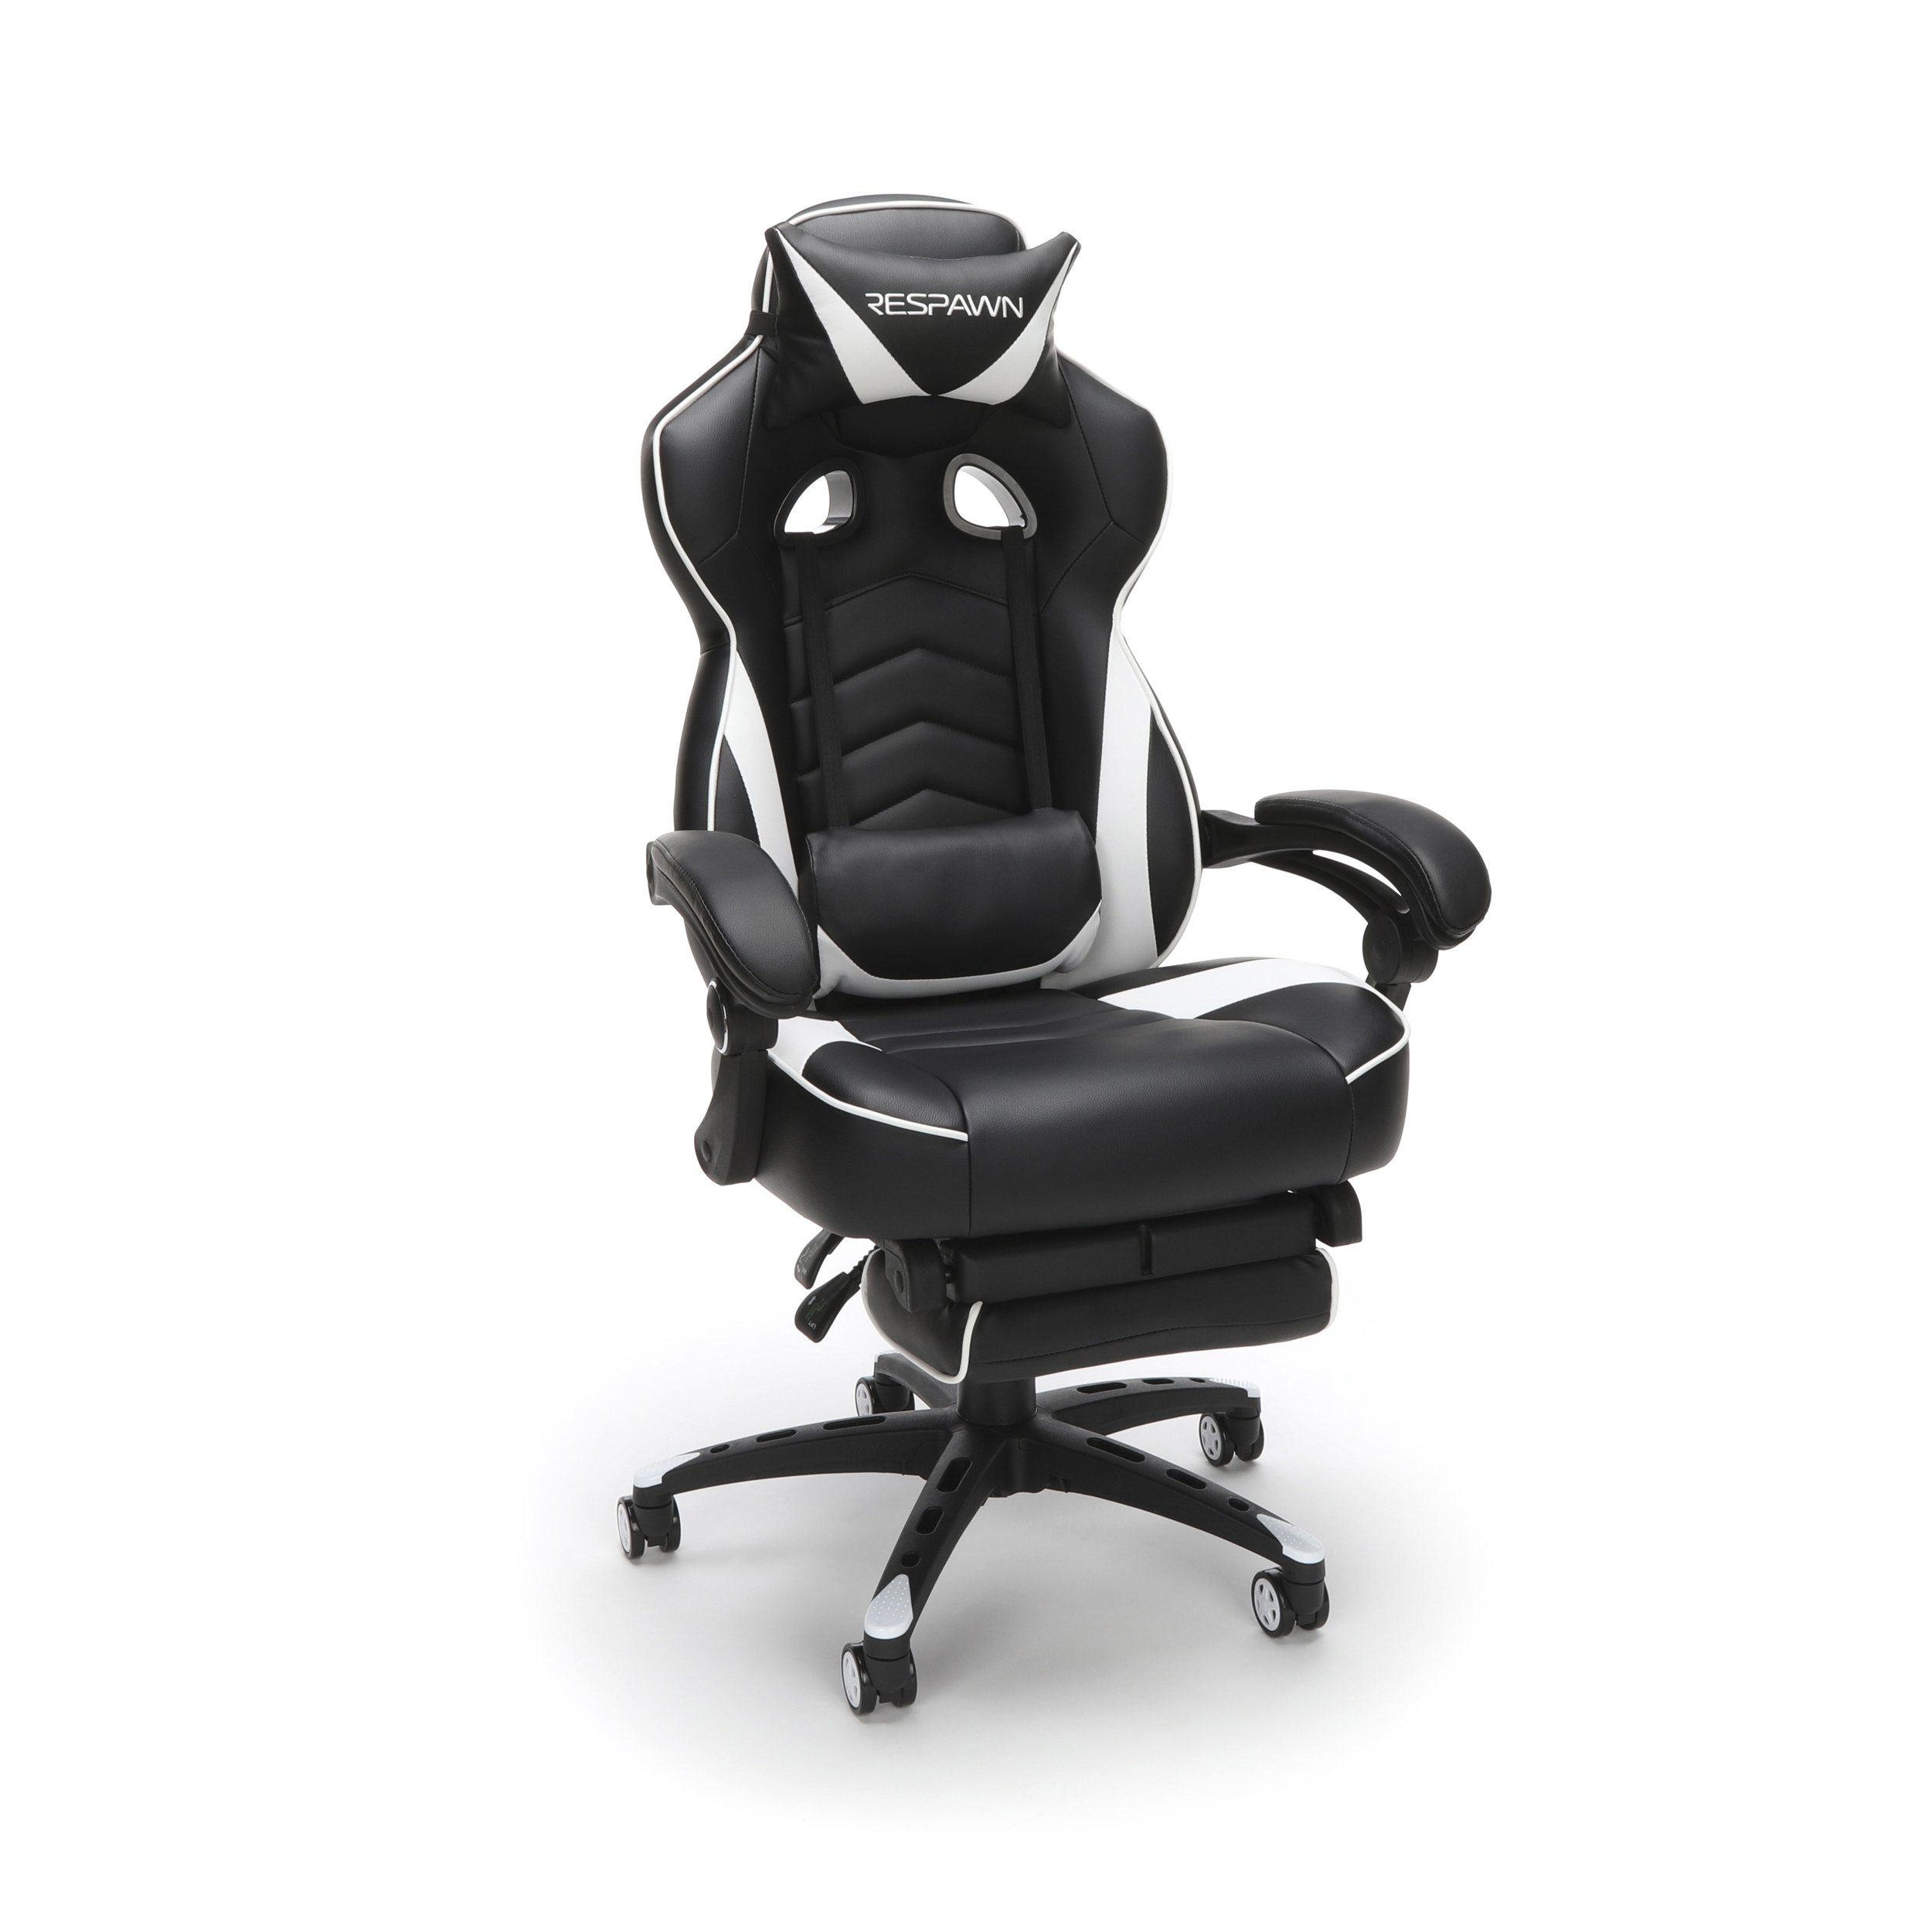 RESPAWN RESPAWN-110 Racing Style Reclining Ergonomic Leather Footrest, Office or Gaming Chair (RSP-110-WHT), White, White by RESPAWN